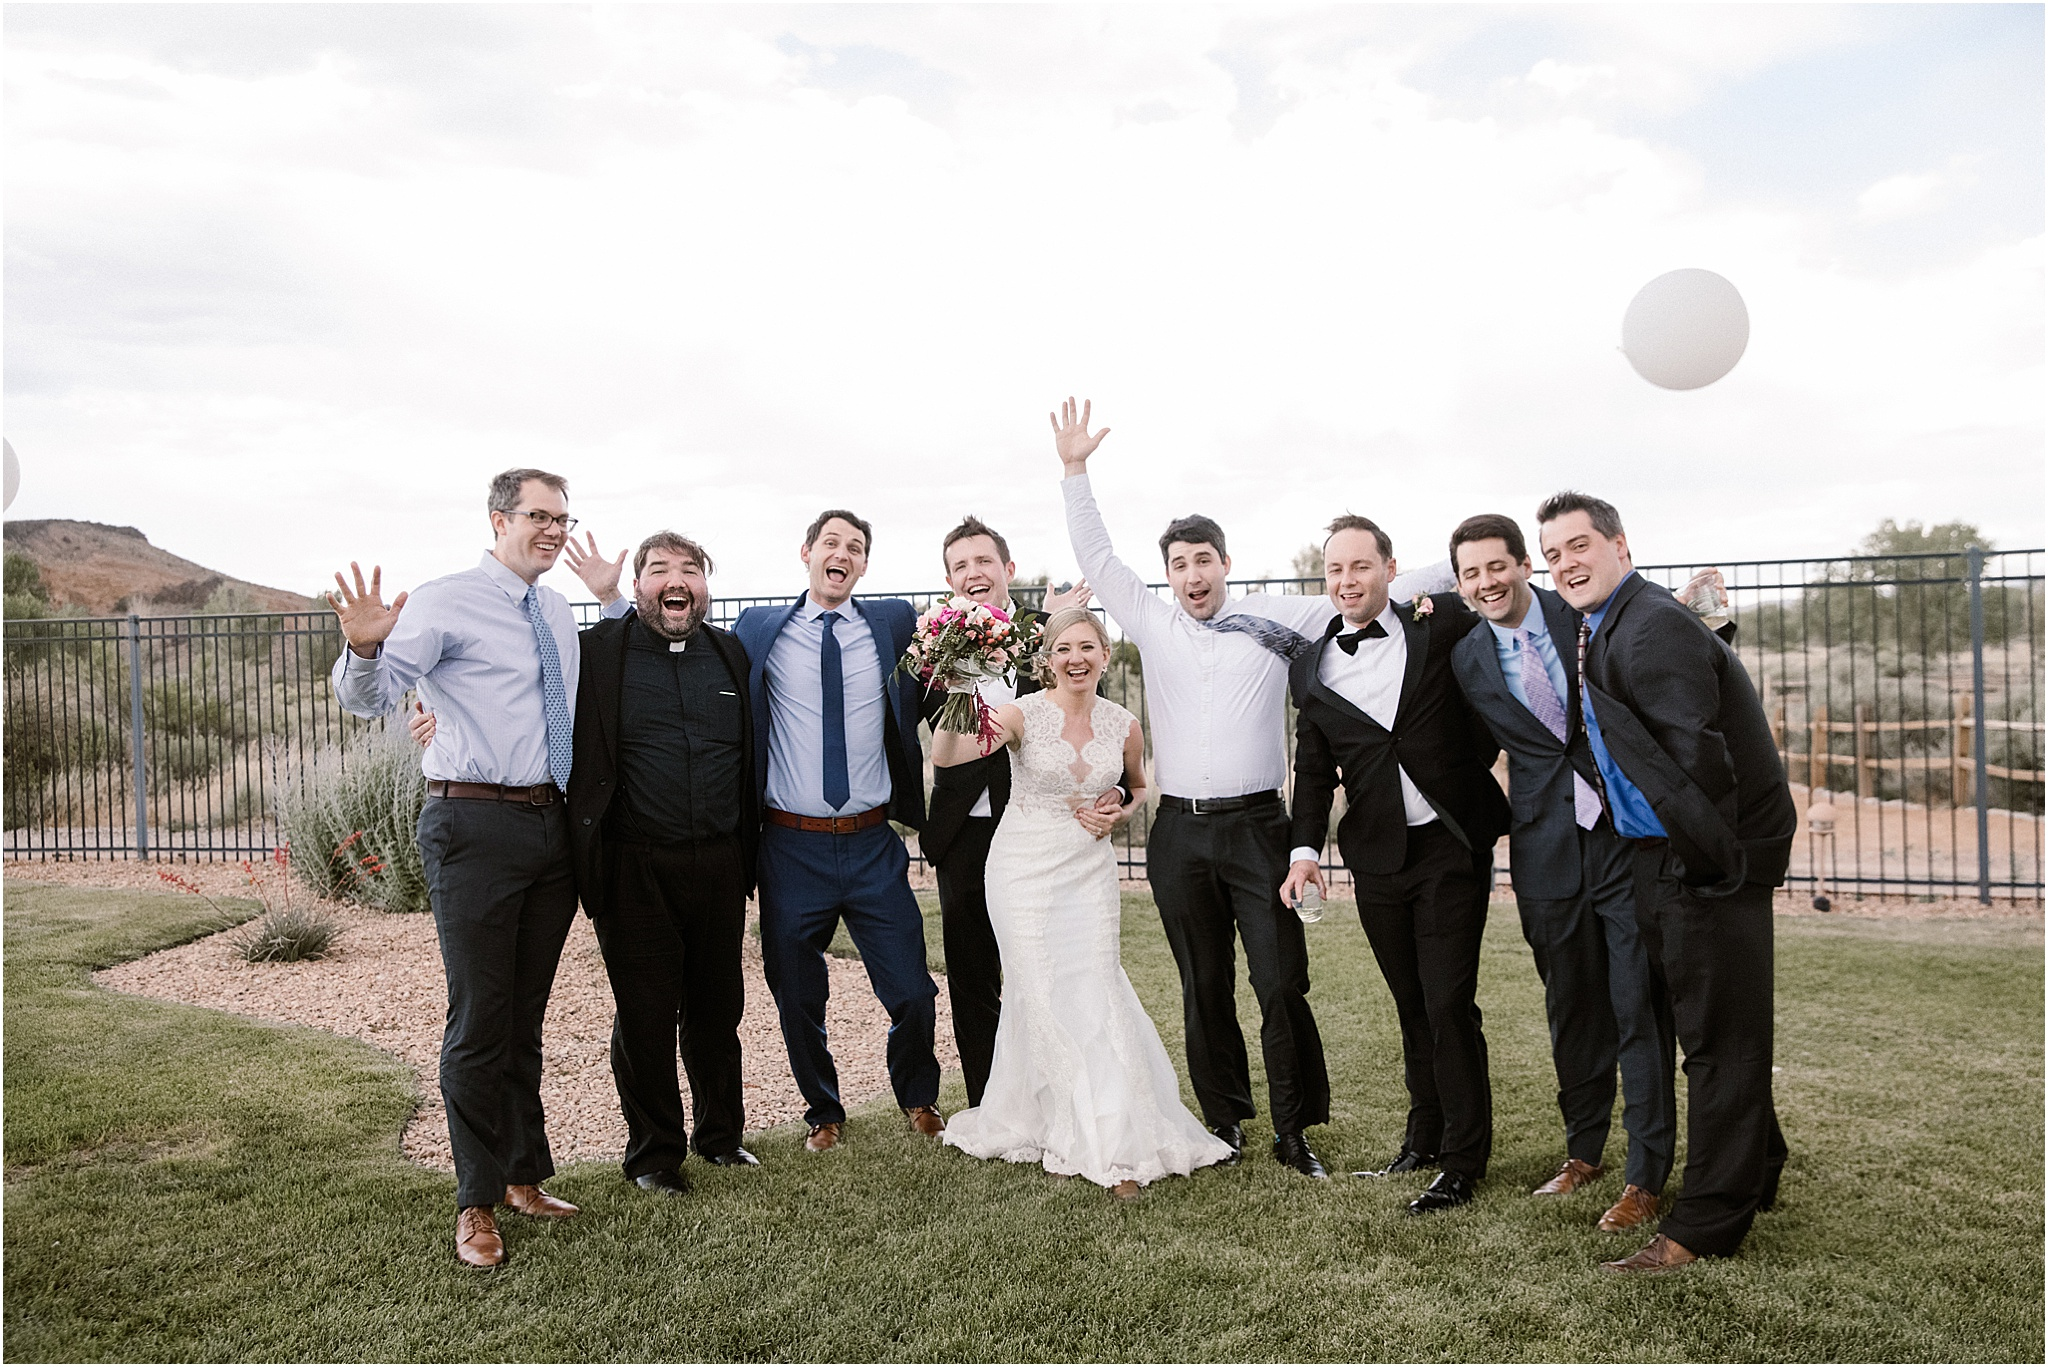 JENNA_JEROME_BLUE ROSE PHOTOGRAPHY_ABQ WEDDING_50